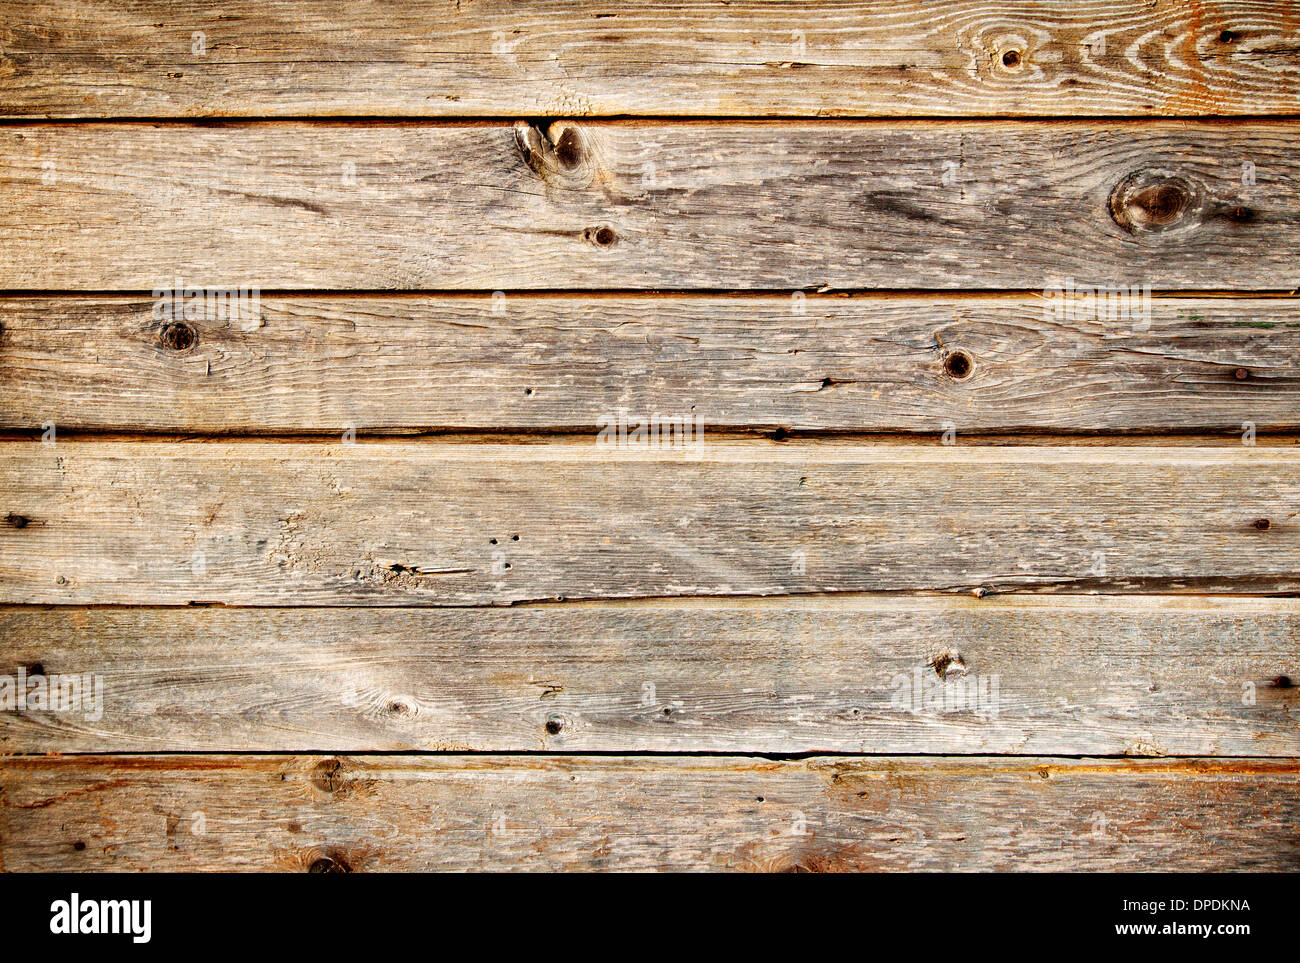 Background of coarse dark planks with knots - Stock Image